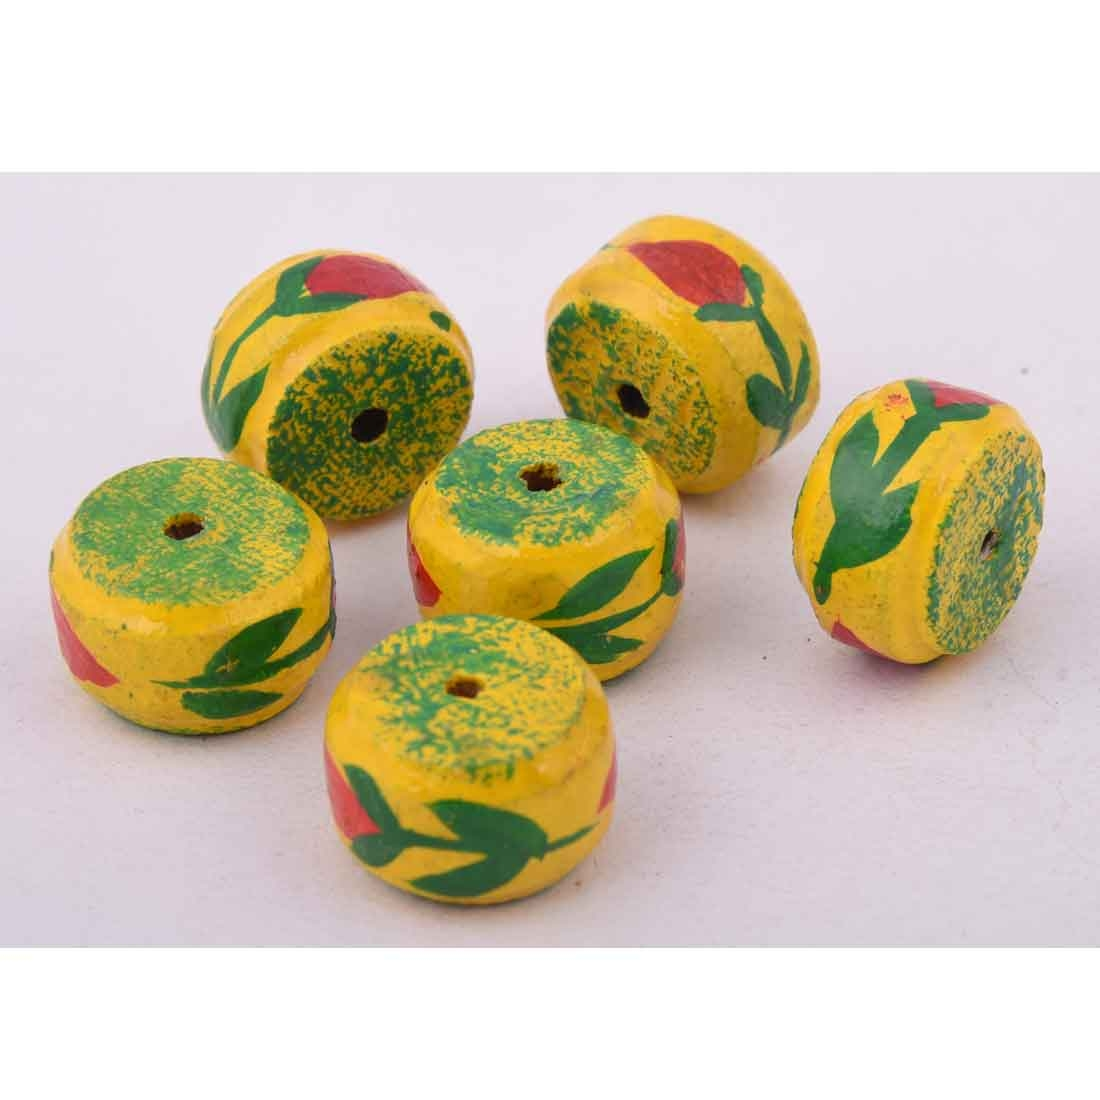 Beads India 1700089 Handcrafted Wooden Beads/Discounts Above 500 pcs